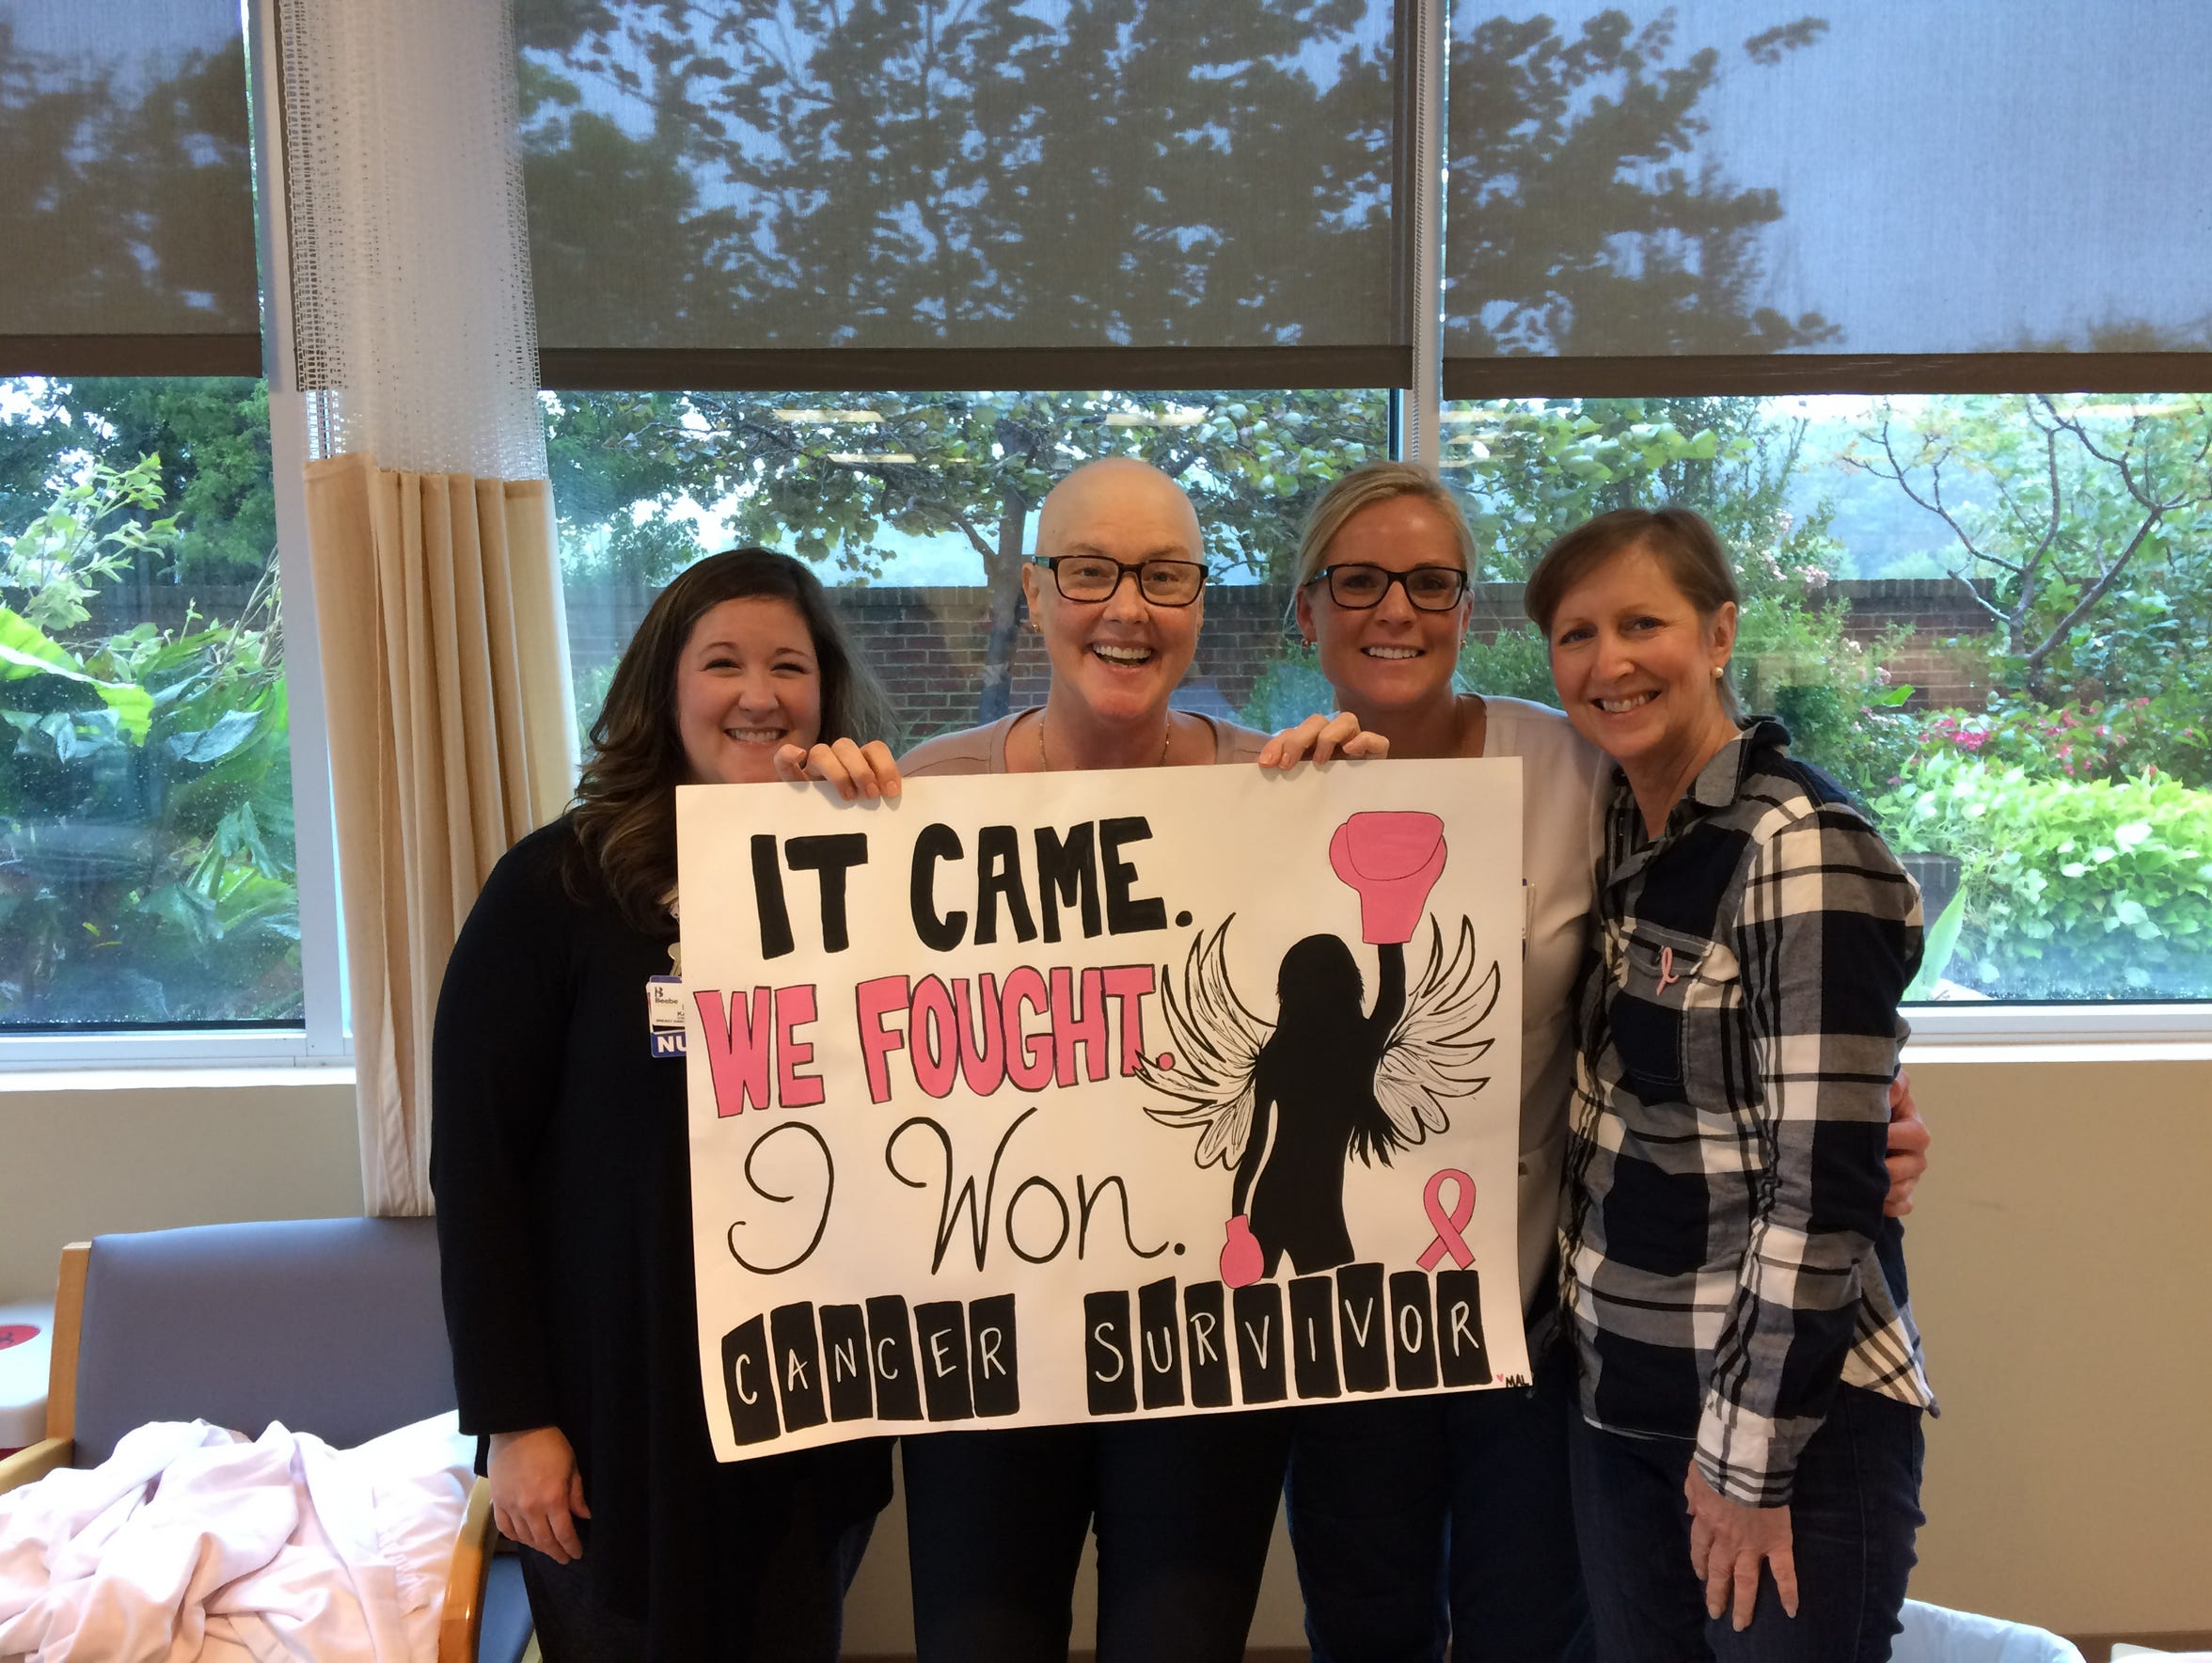 Lisa Welling poses for a photo on her final chemo session